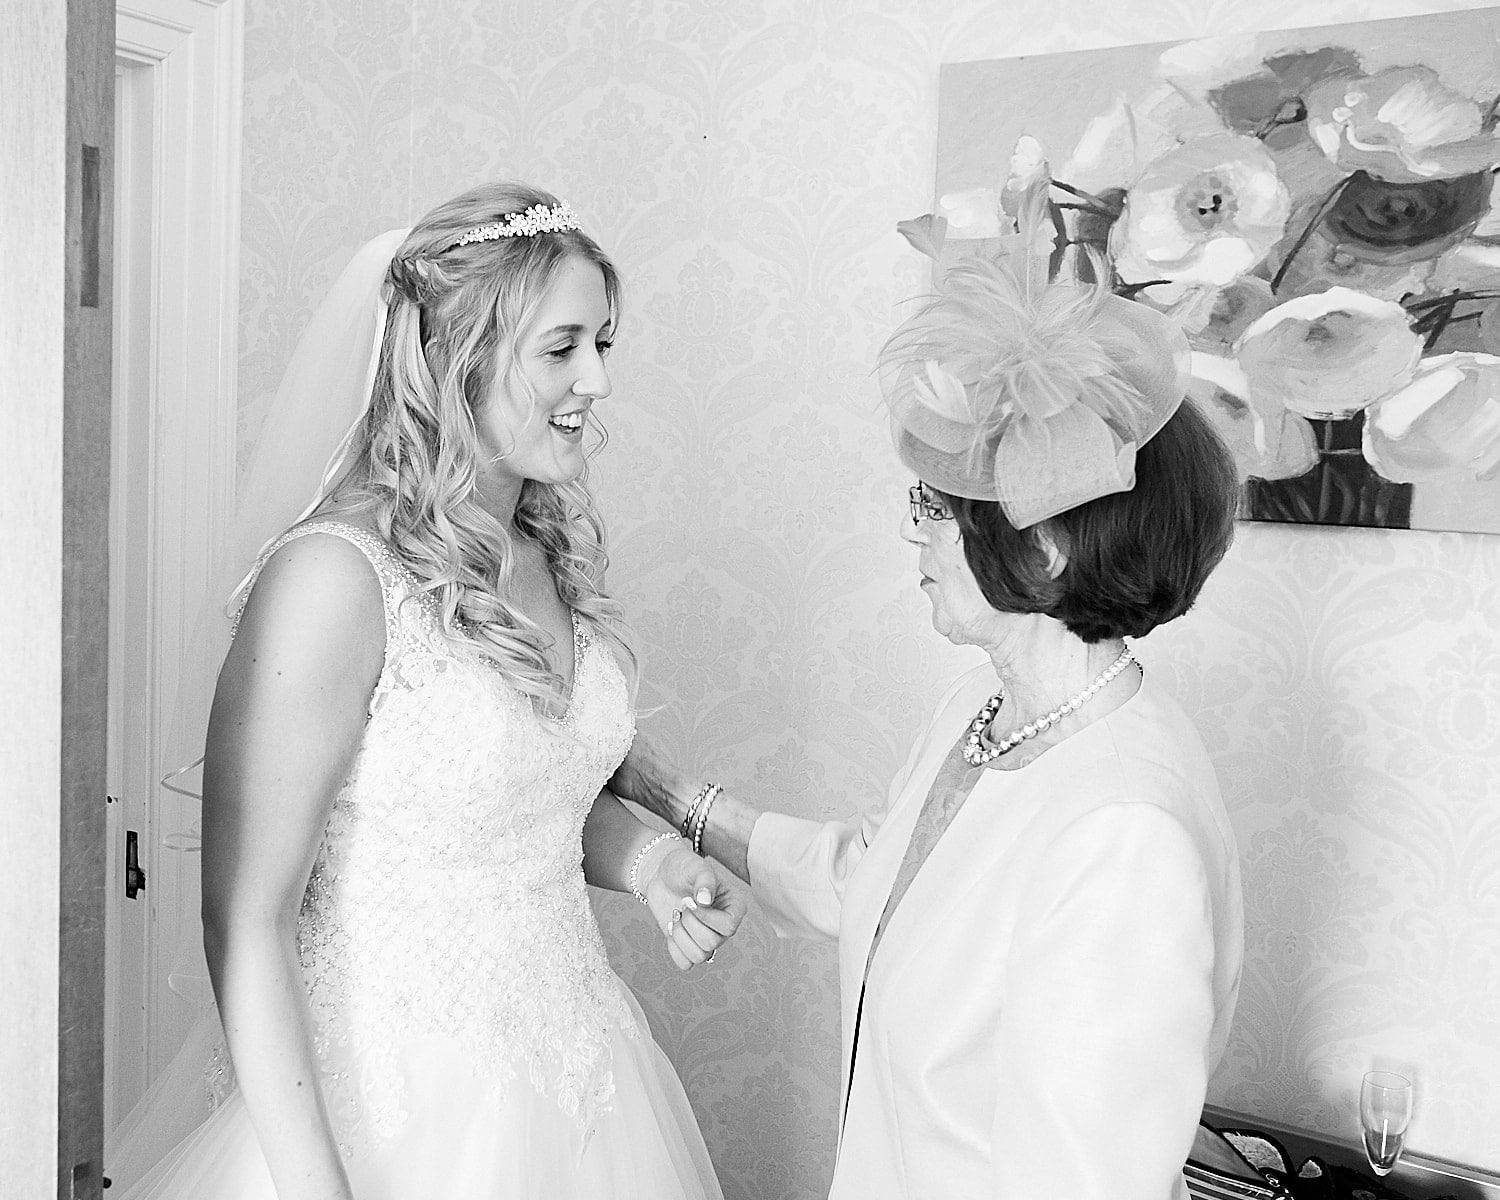 A bride and a relative speak before the wedding